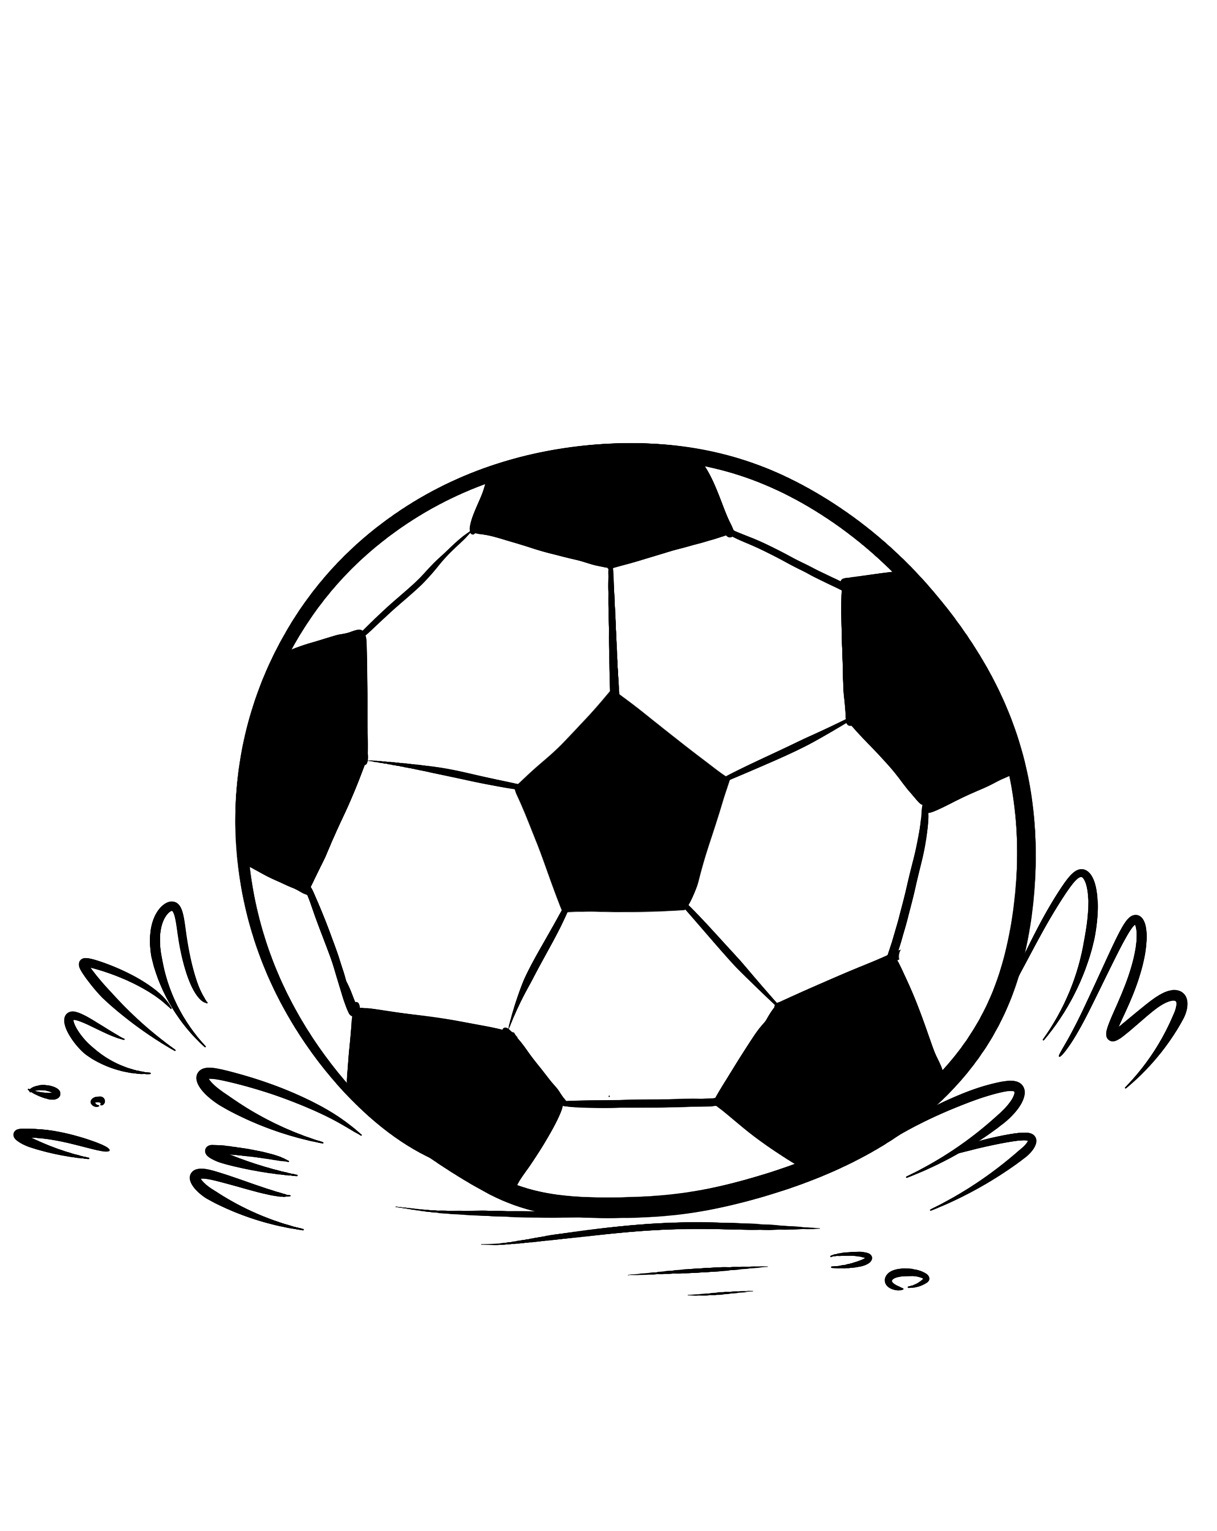 colouring pages soccer soccer coloring pages google search coloring pages soccer colouring pages